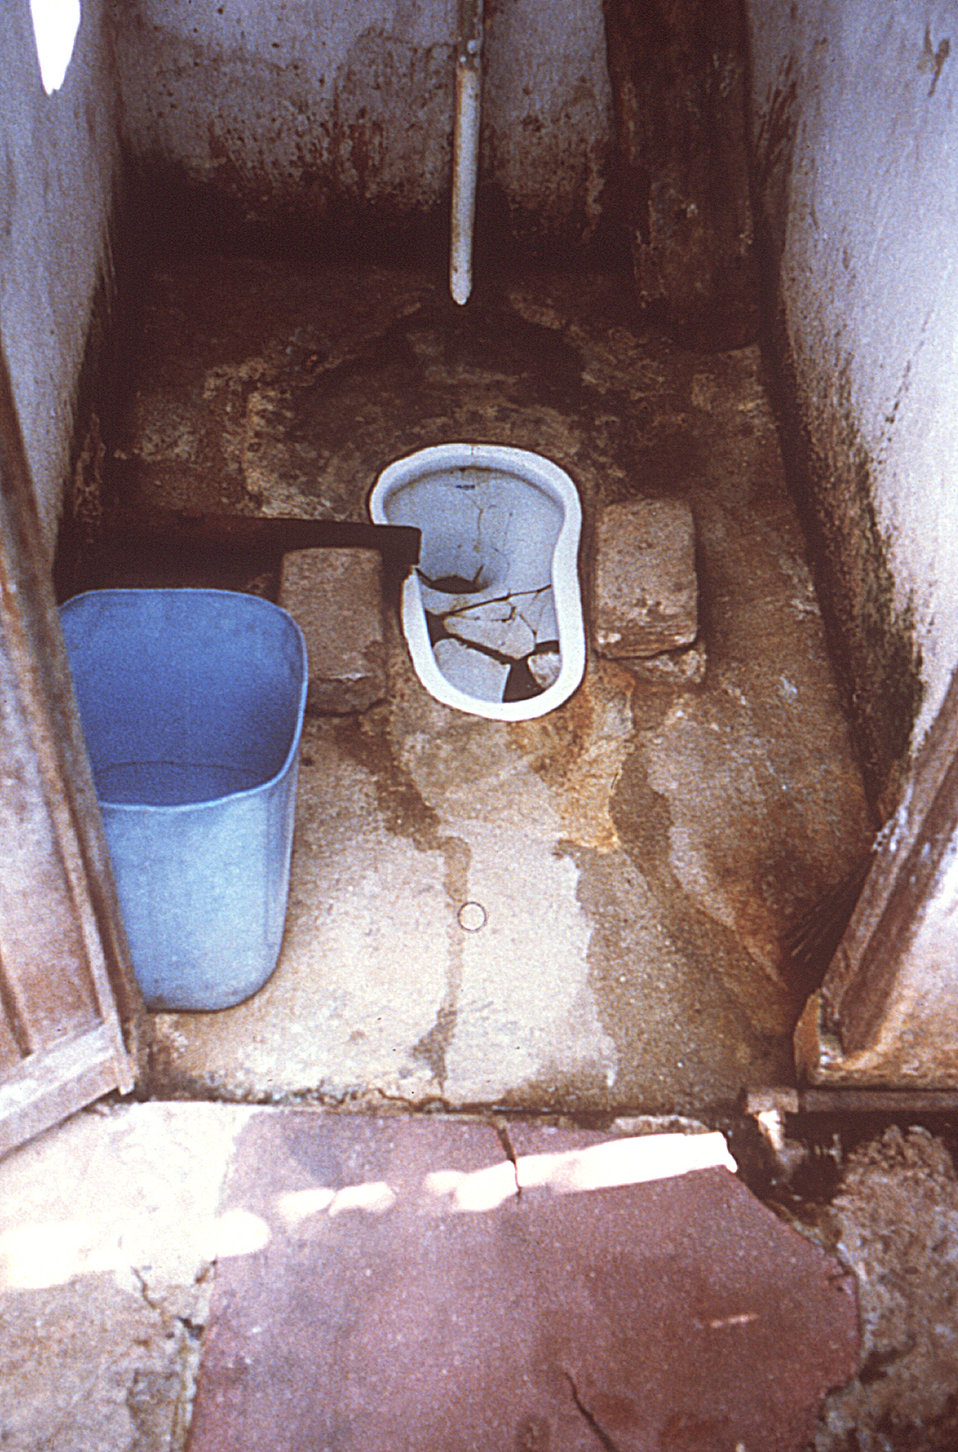 These were conditions inside the water closet of the index case residence during a Cite' Roche Bois, Mauritius typhoid outbreak.